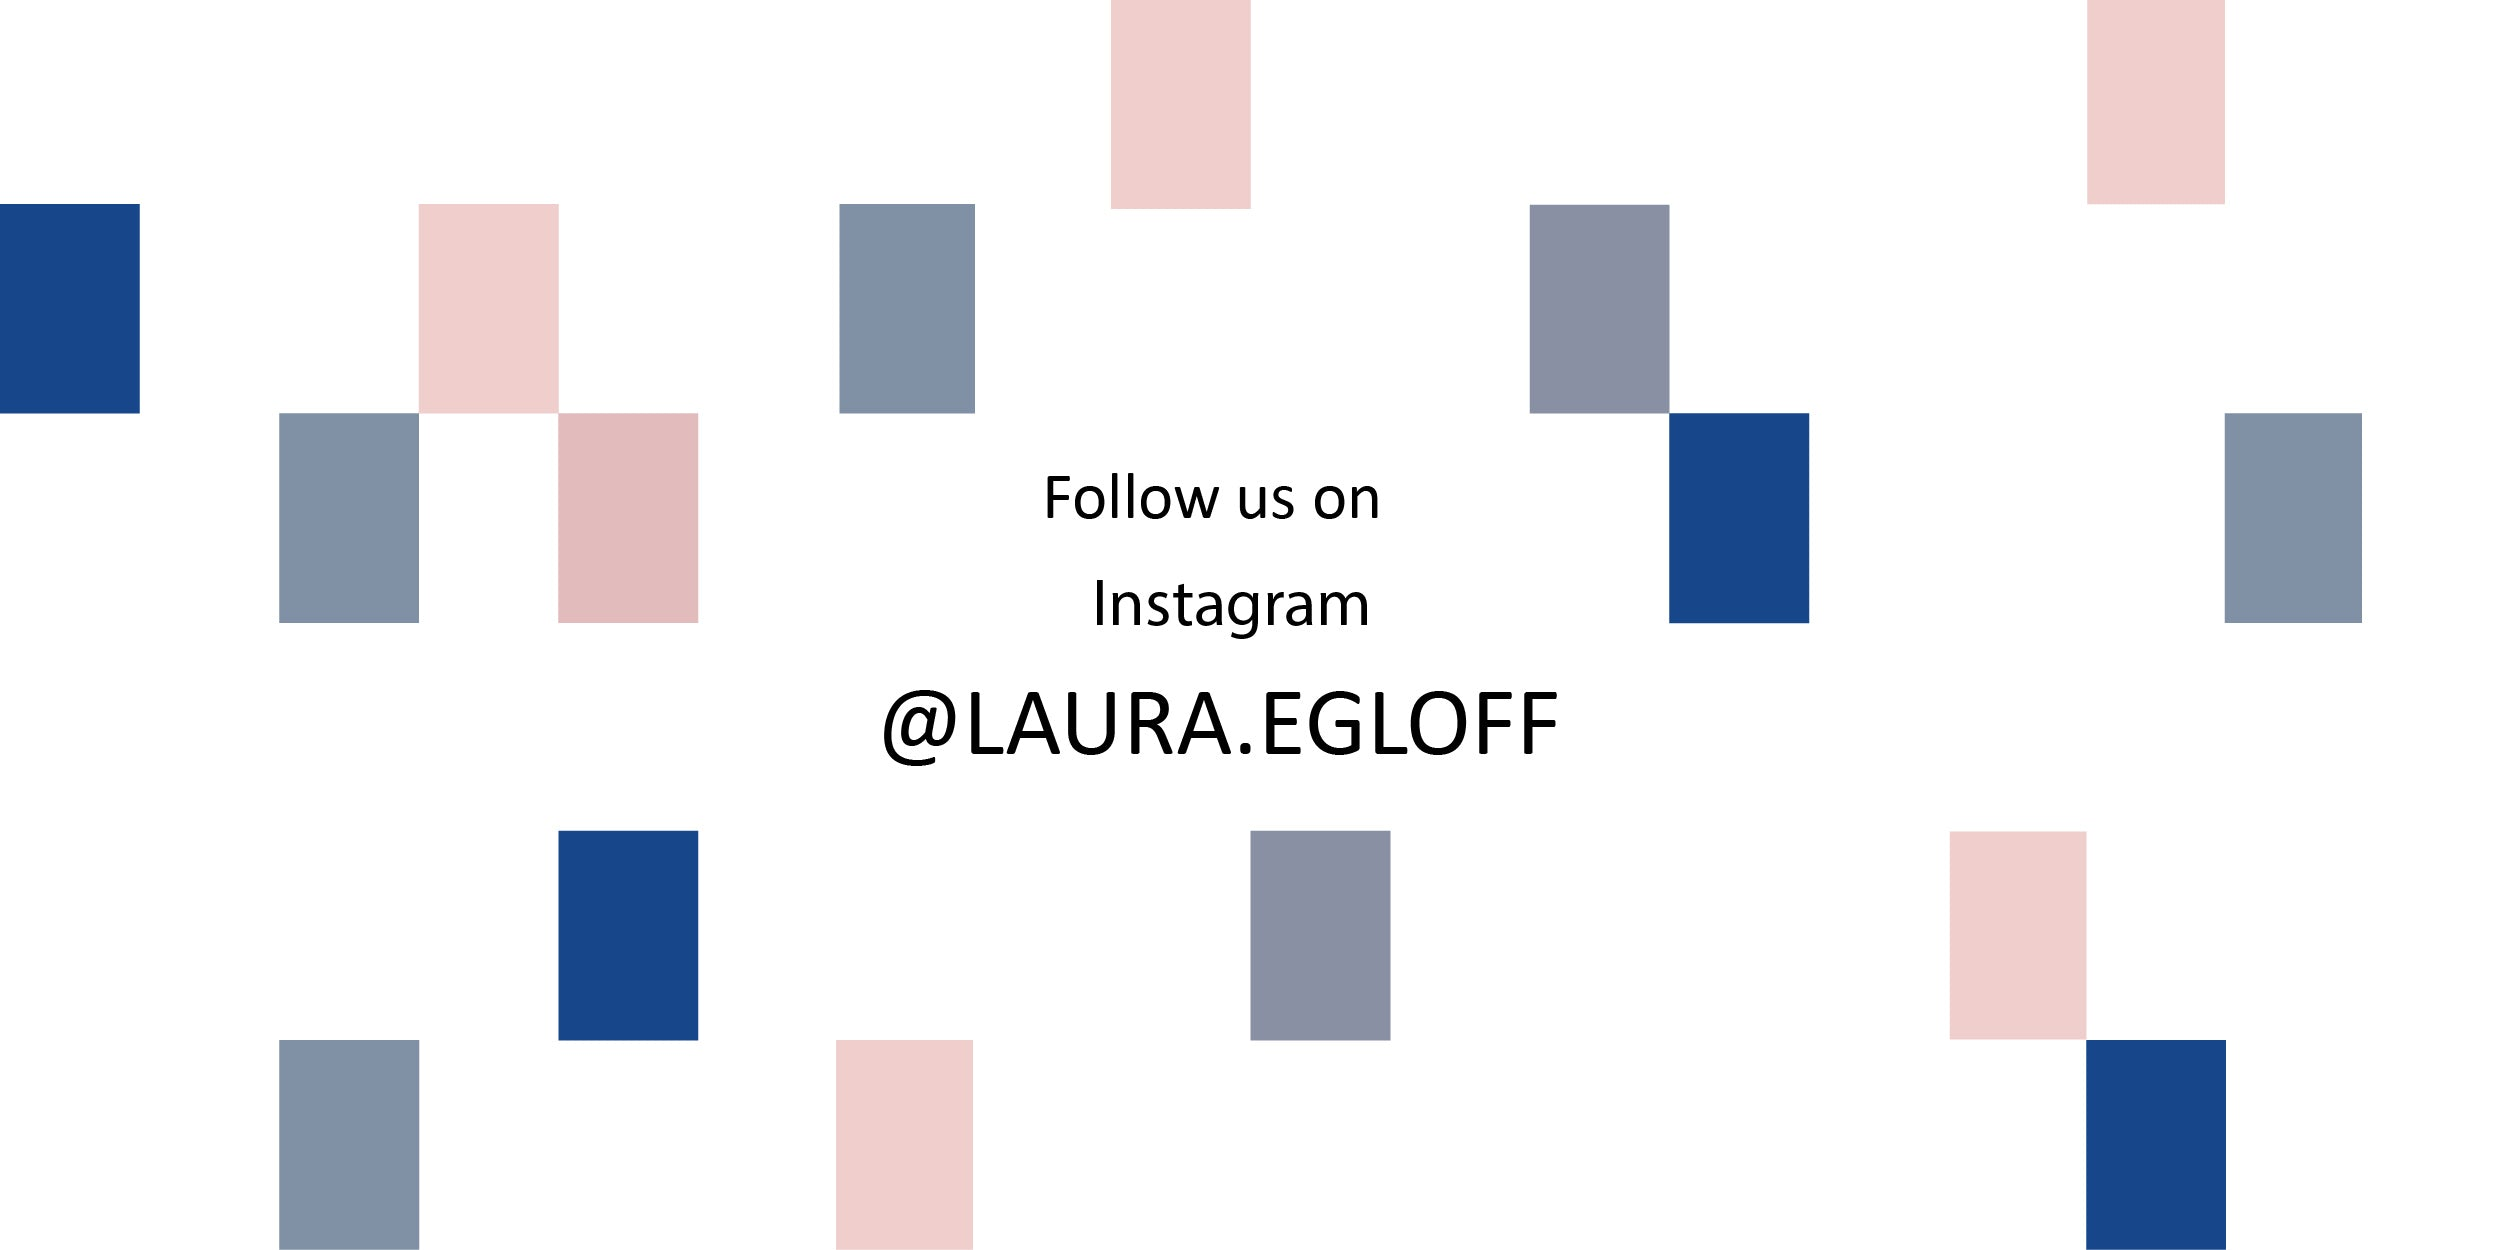 Laura Egloff - Follow us